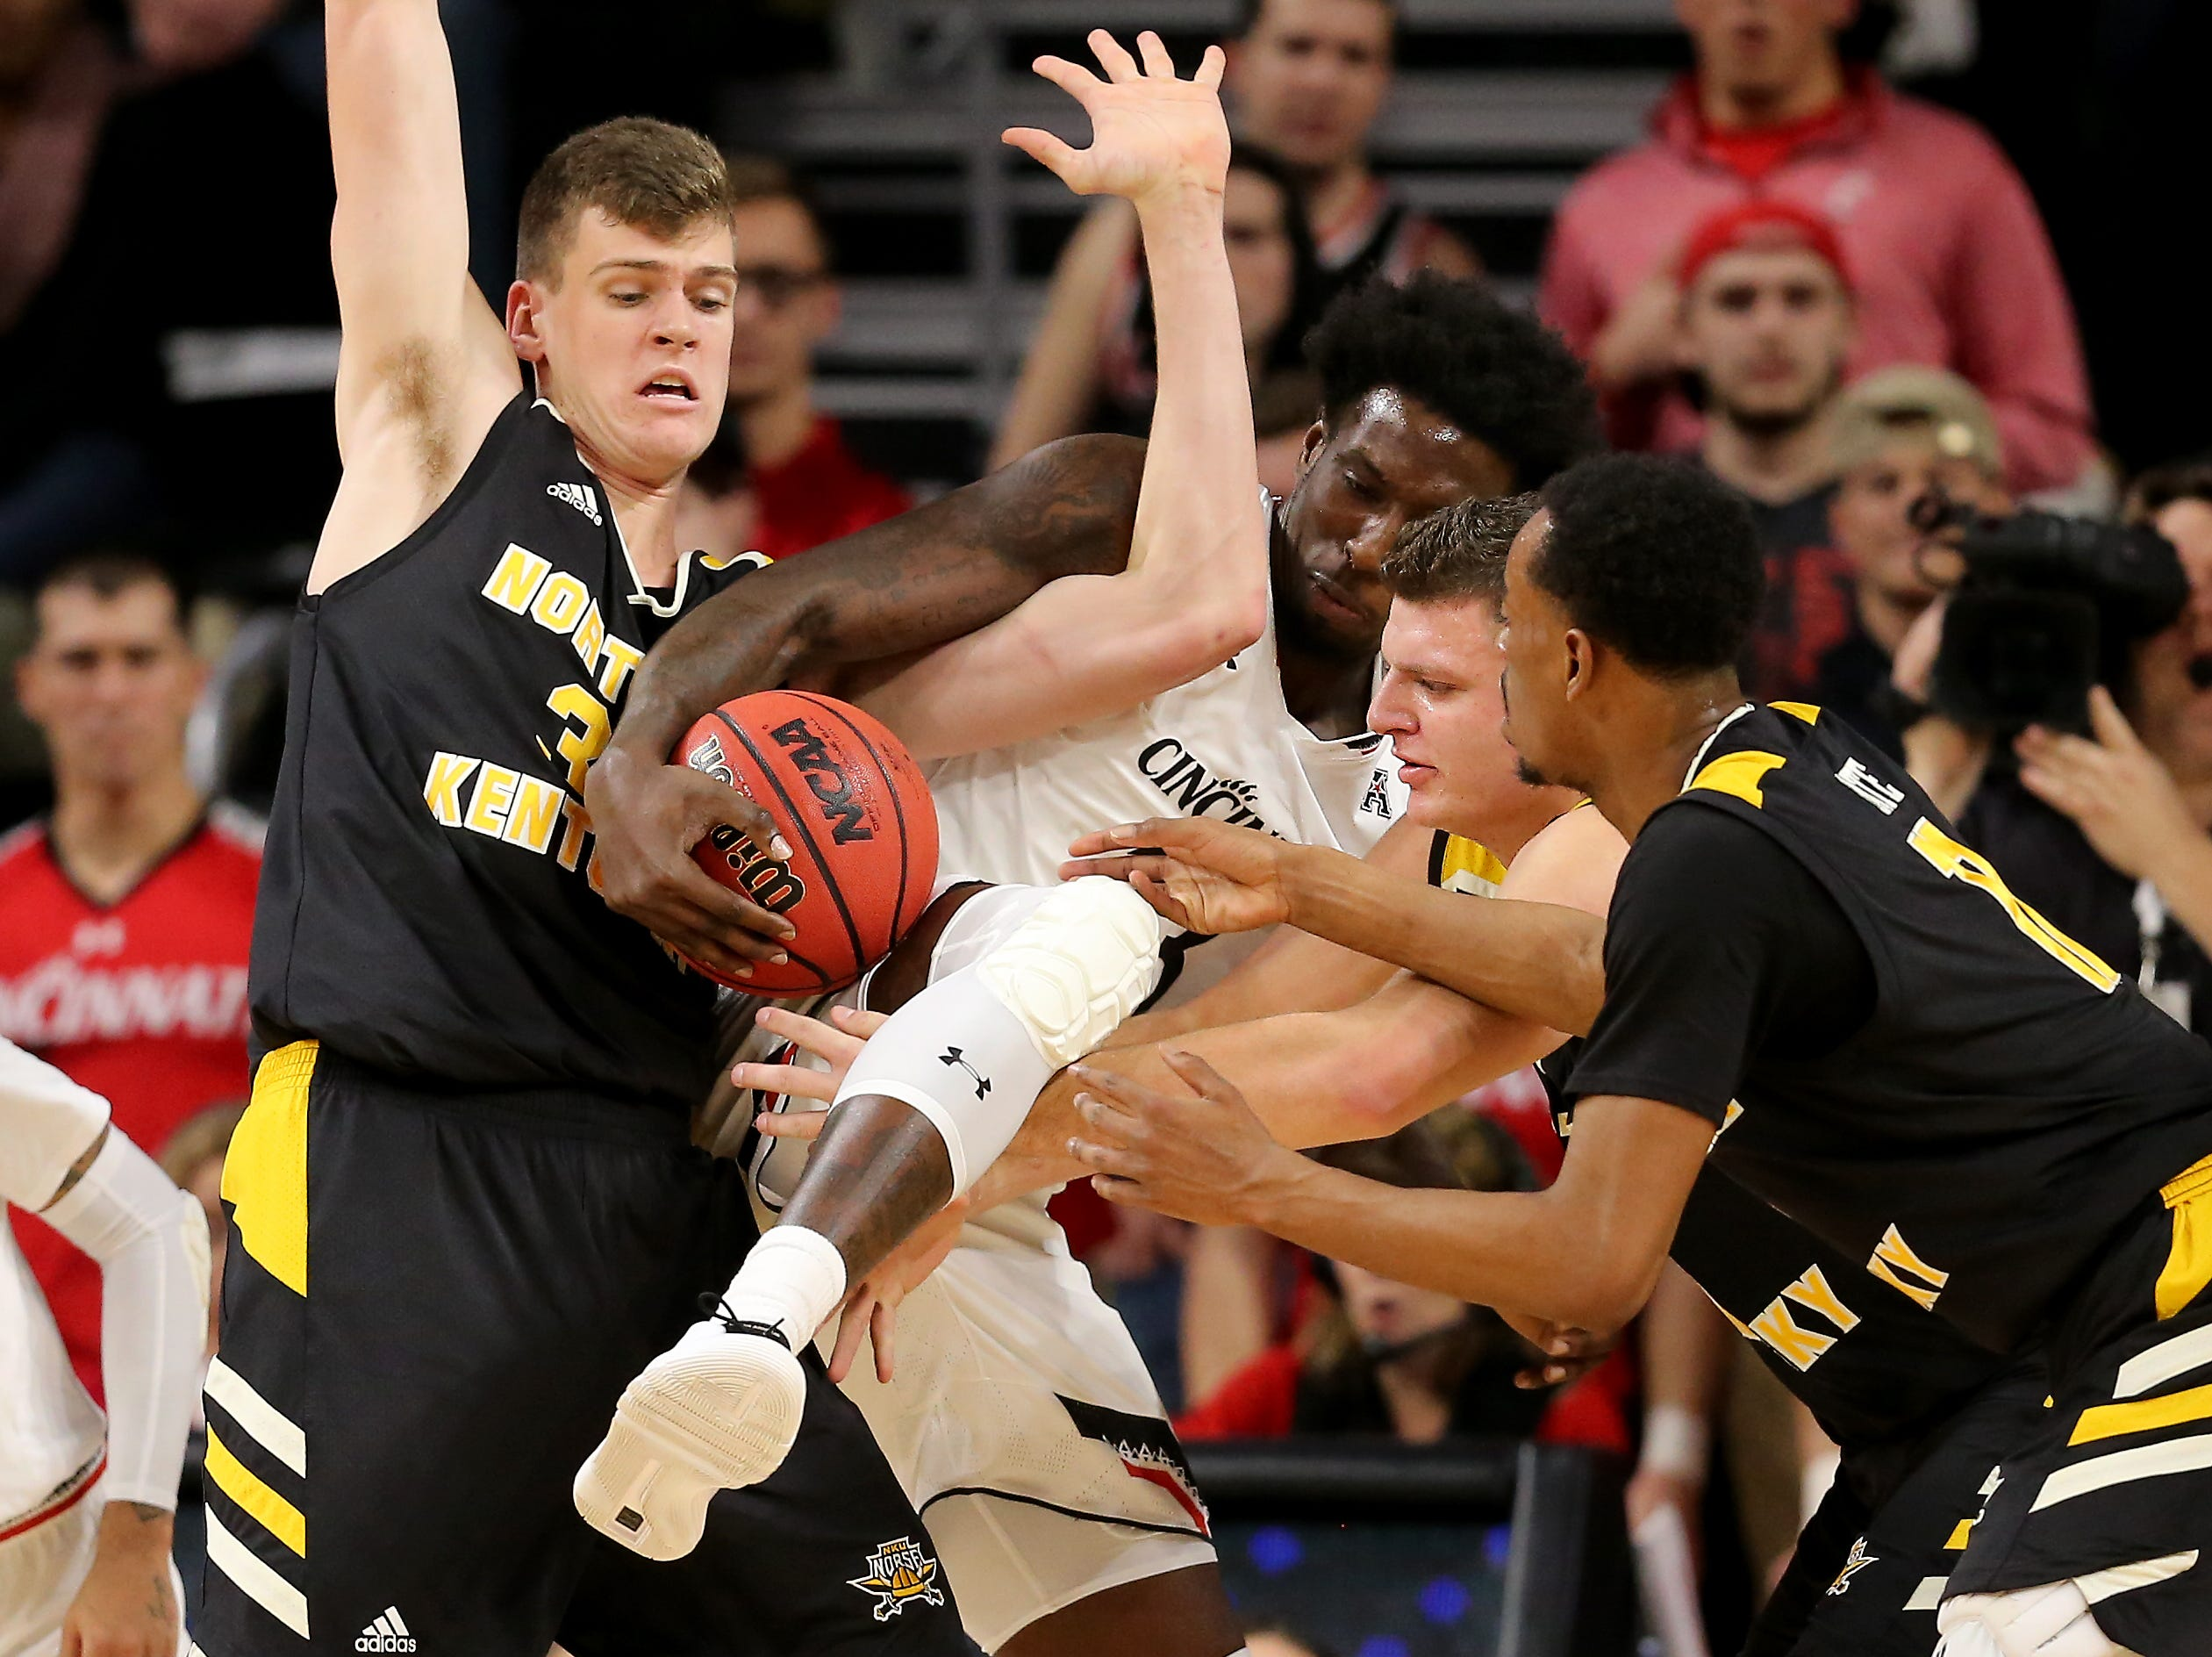 Cincinnati Bearcats center Nysier Brooks (33), center, brings in a loose ball as Northern Kentucky Norse center Chris Vogt (33) and Northern Kentucky Norse forward Drew McDonald (34) defend in the first half of an NCAA college basketball, Tuesday, Dec. 4, 2018, at Fifth Third Arena in Cincinnati.